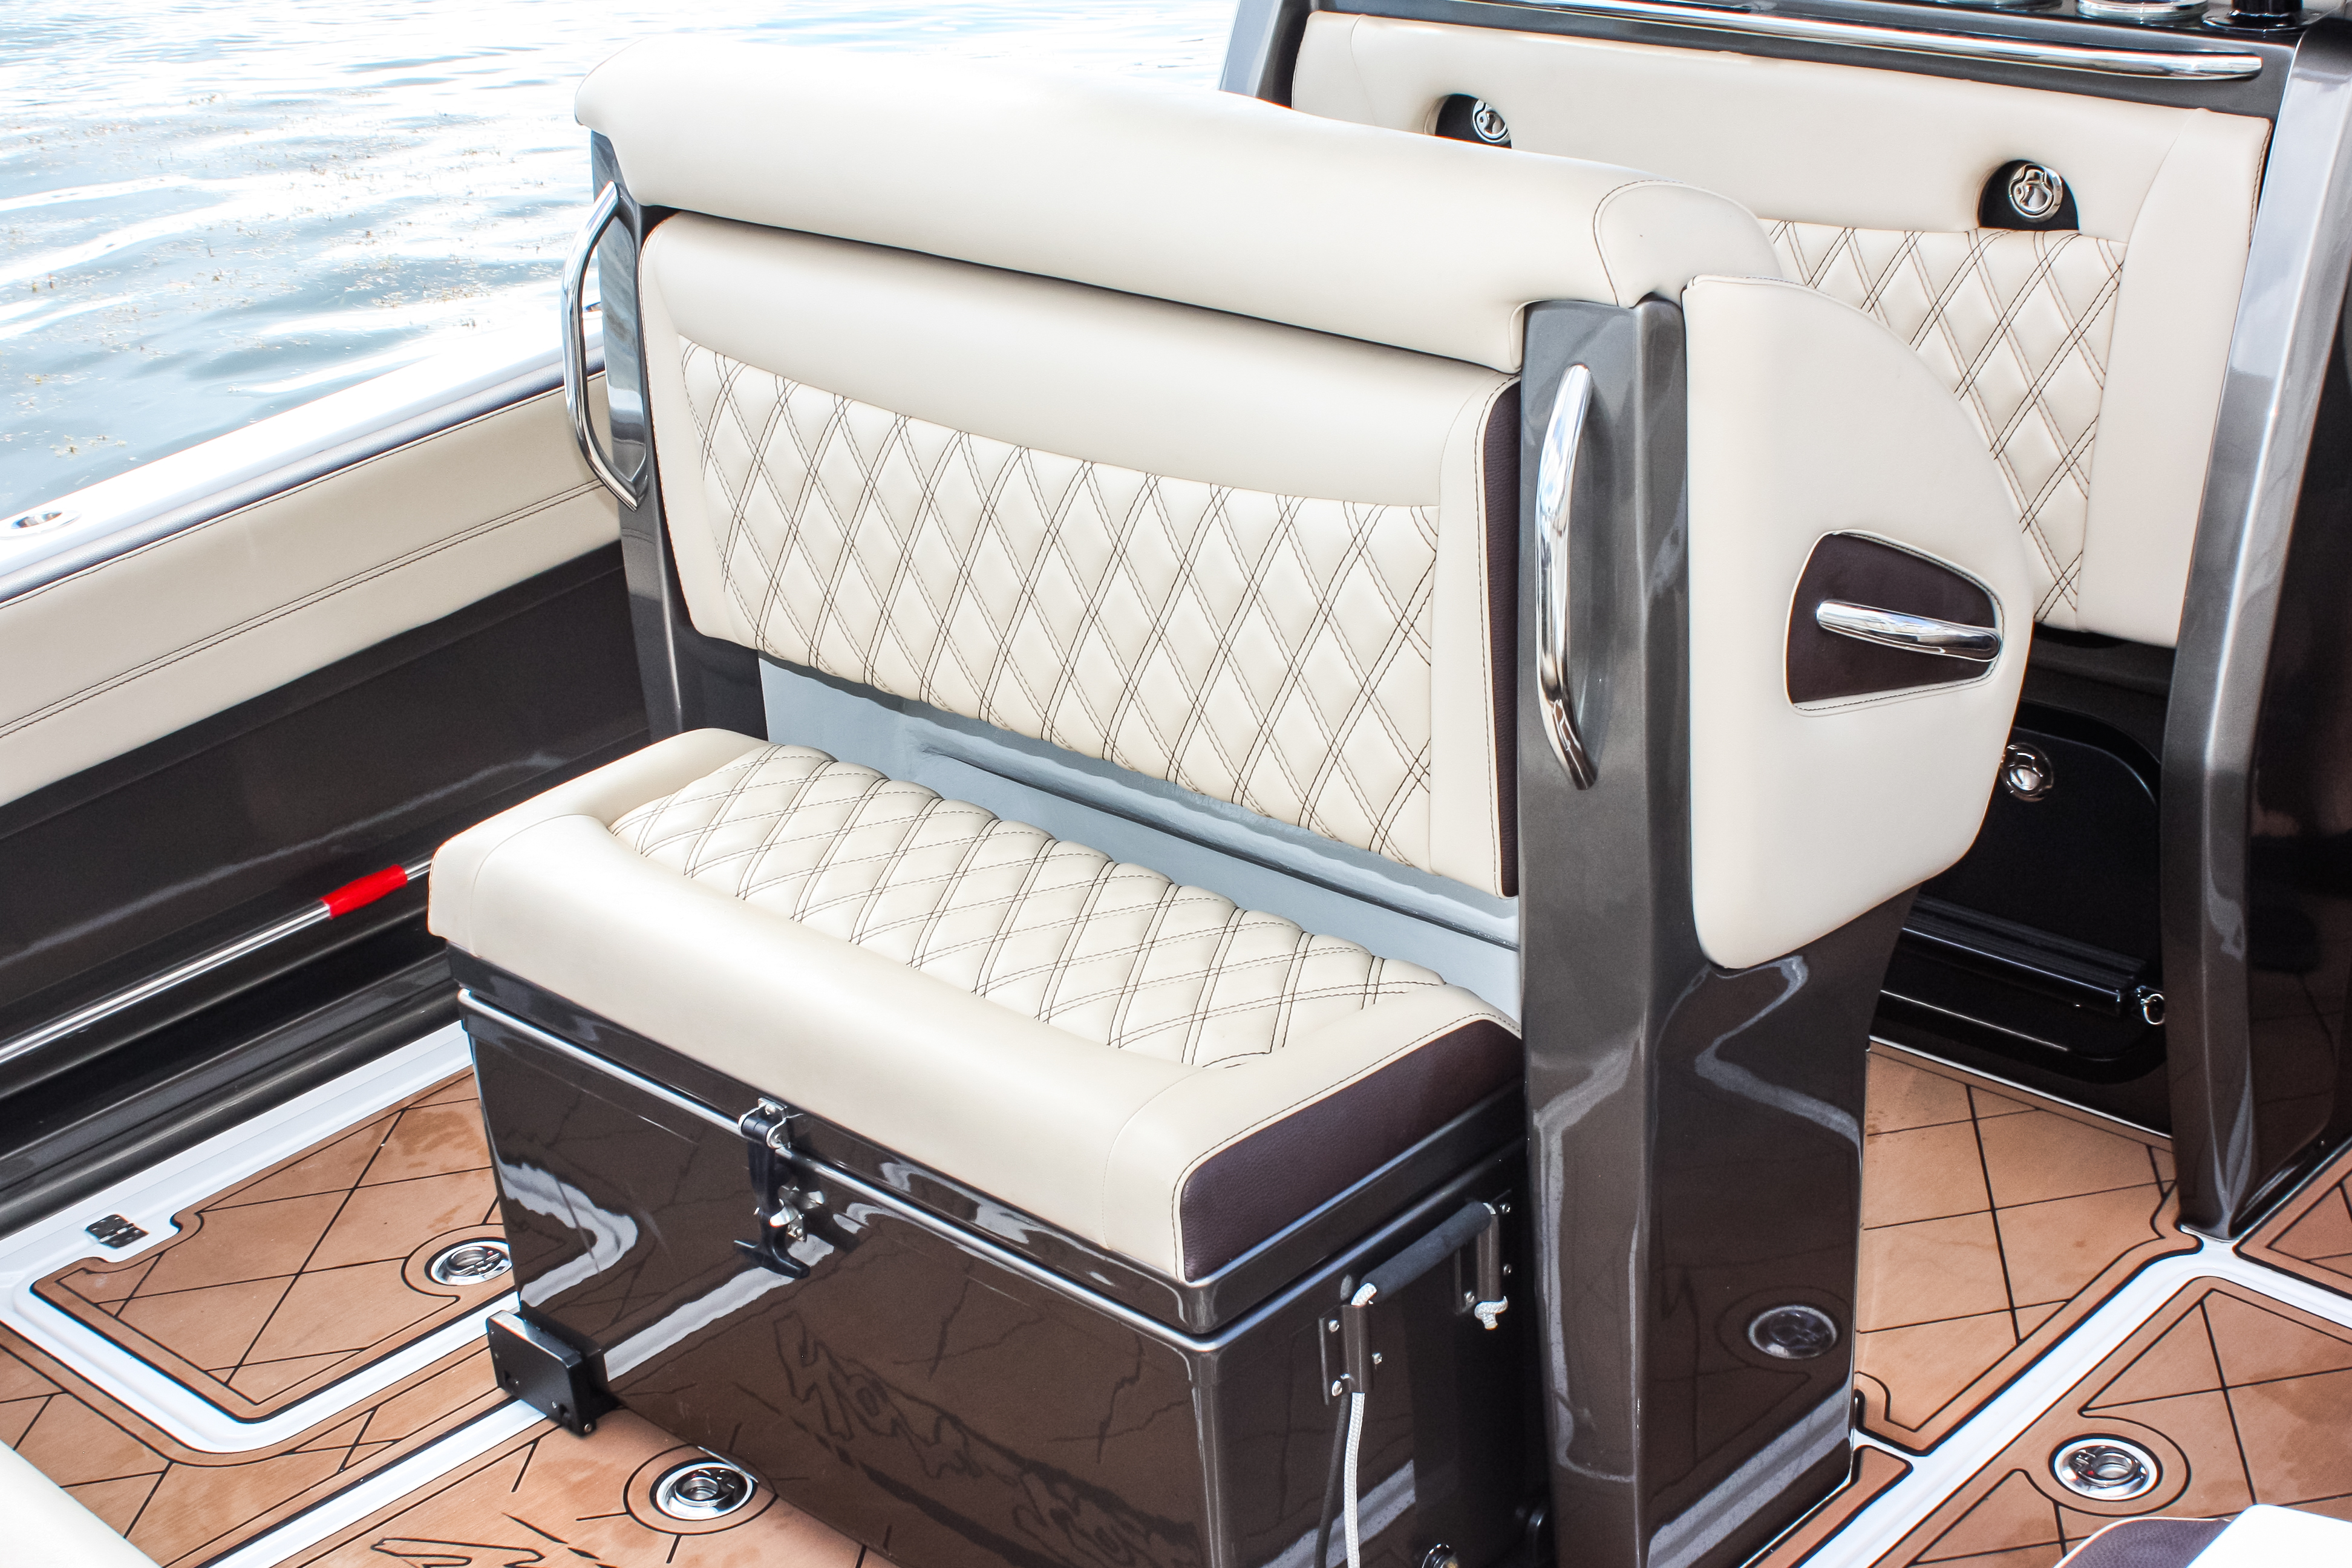 16 390 ice chest in and seat.jpg